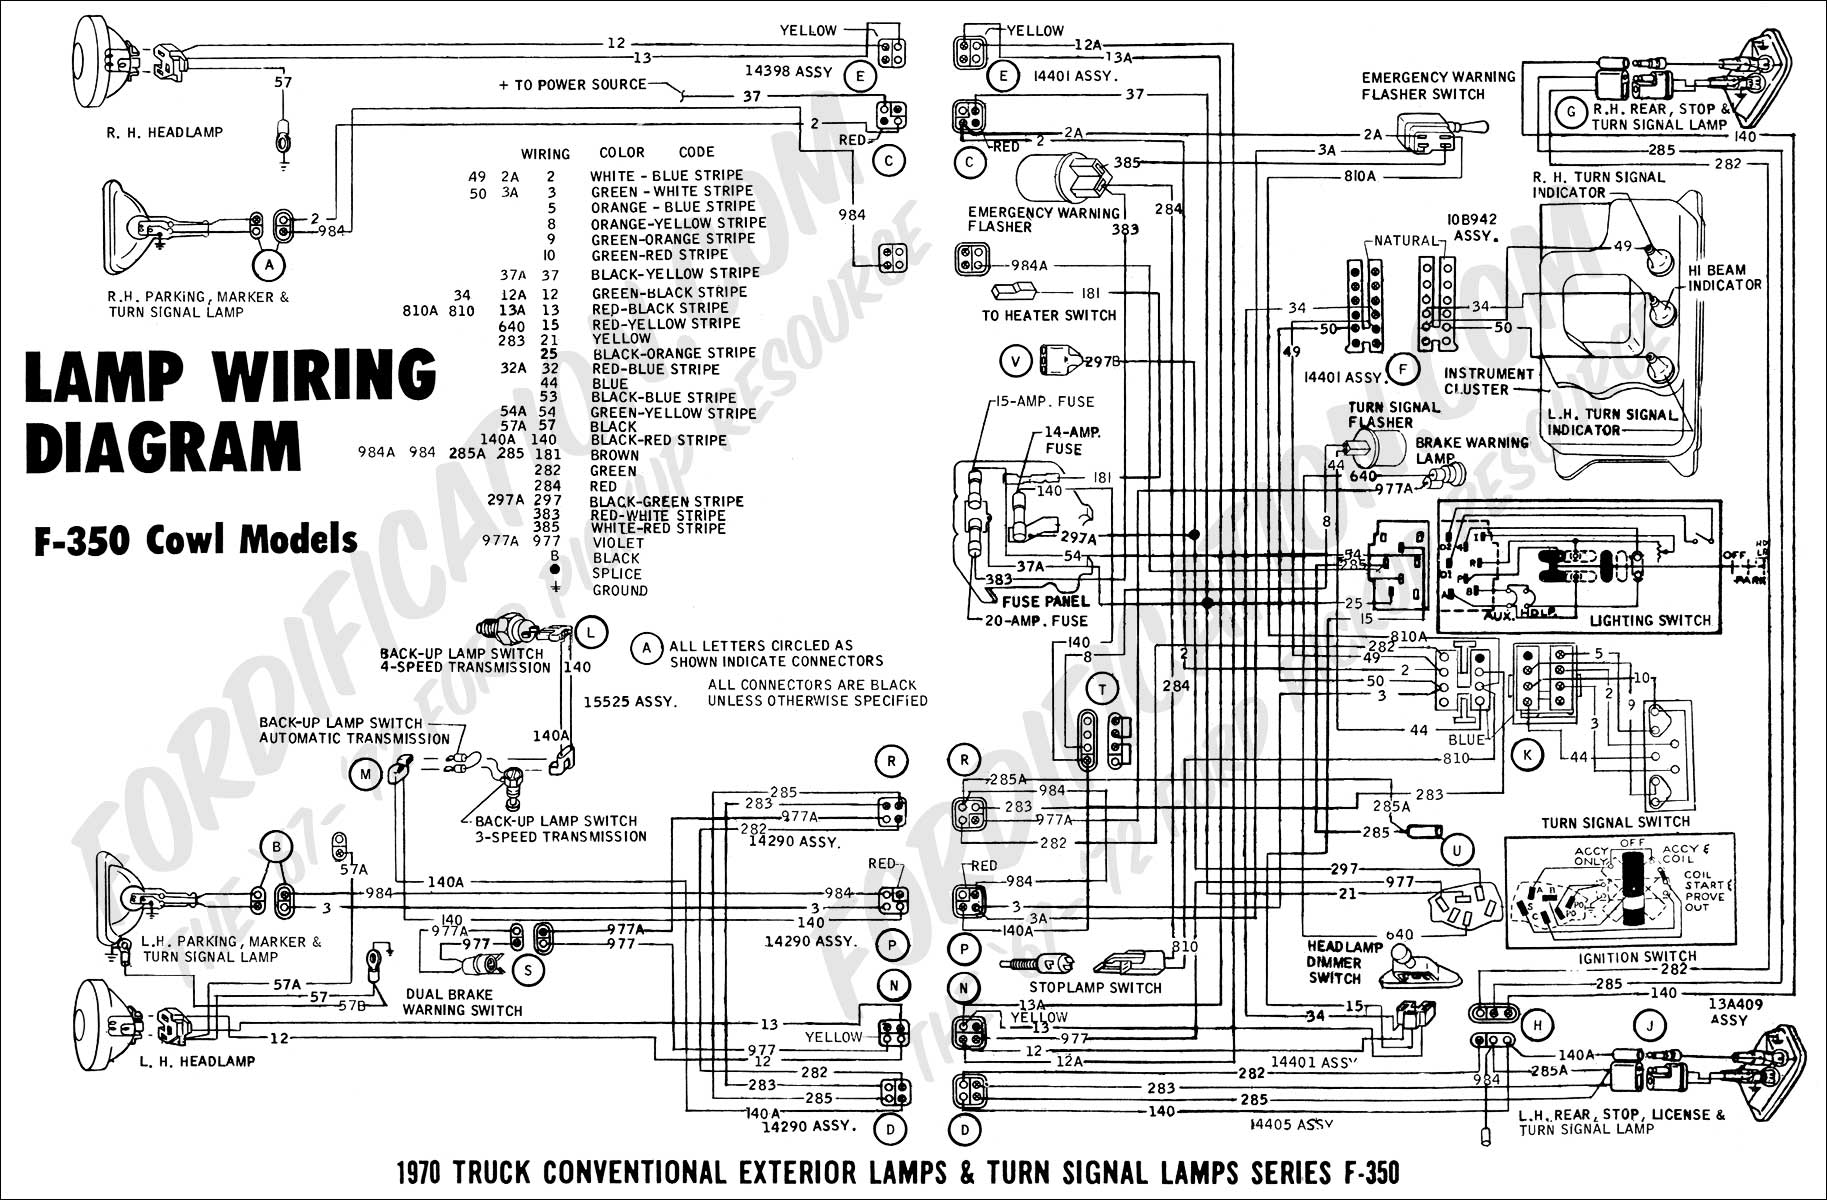 2004 350 Ford Fuse Diagram Wiring Library F250 Box 2003 F350 Transmission Detailed Schematics Van 2006